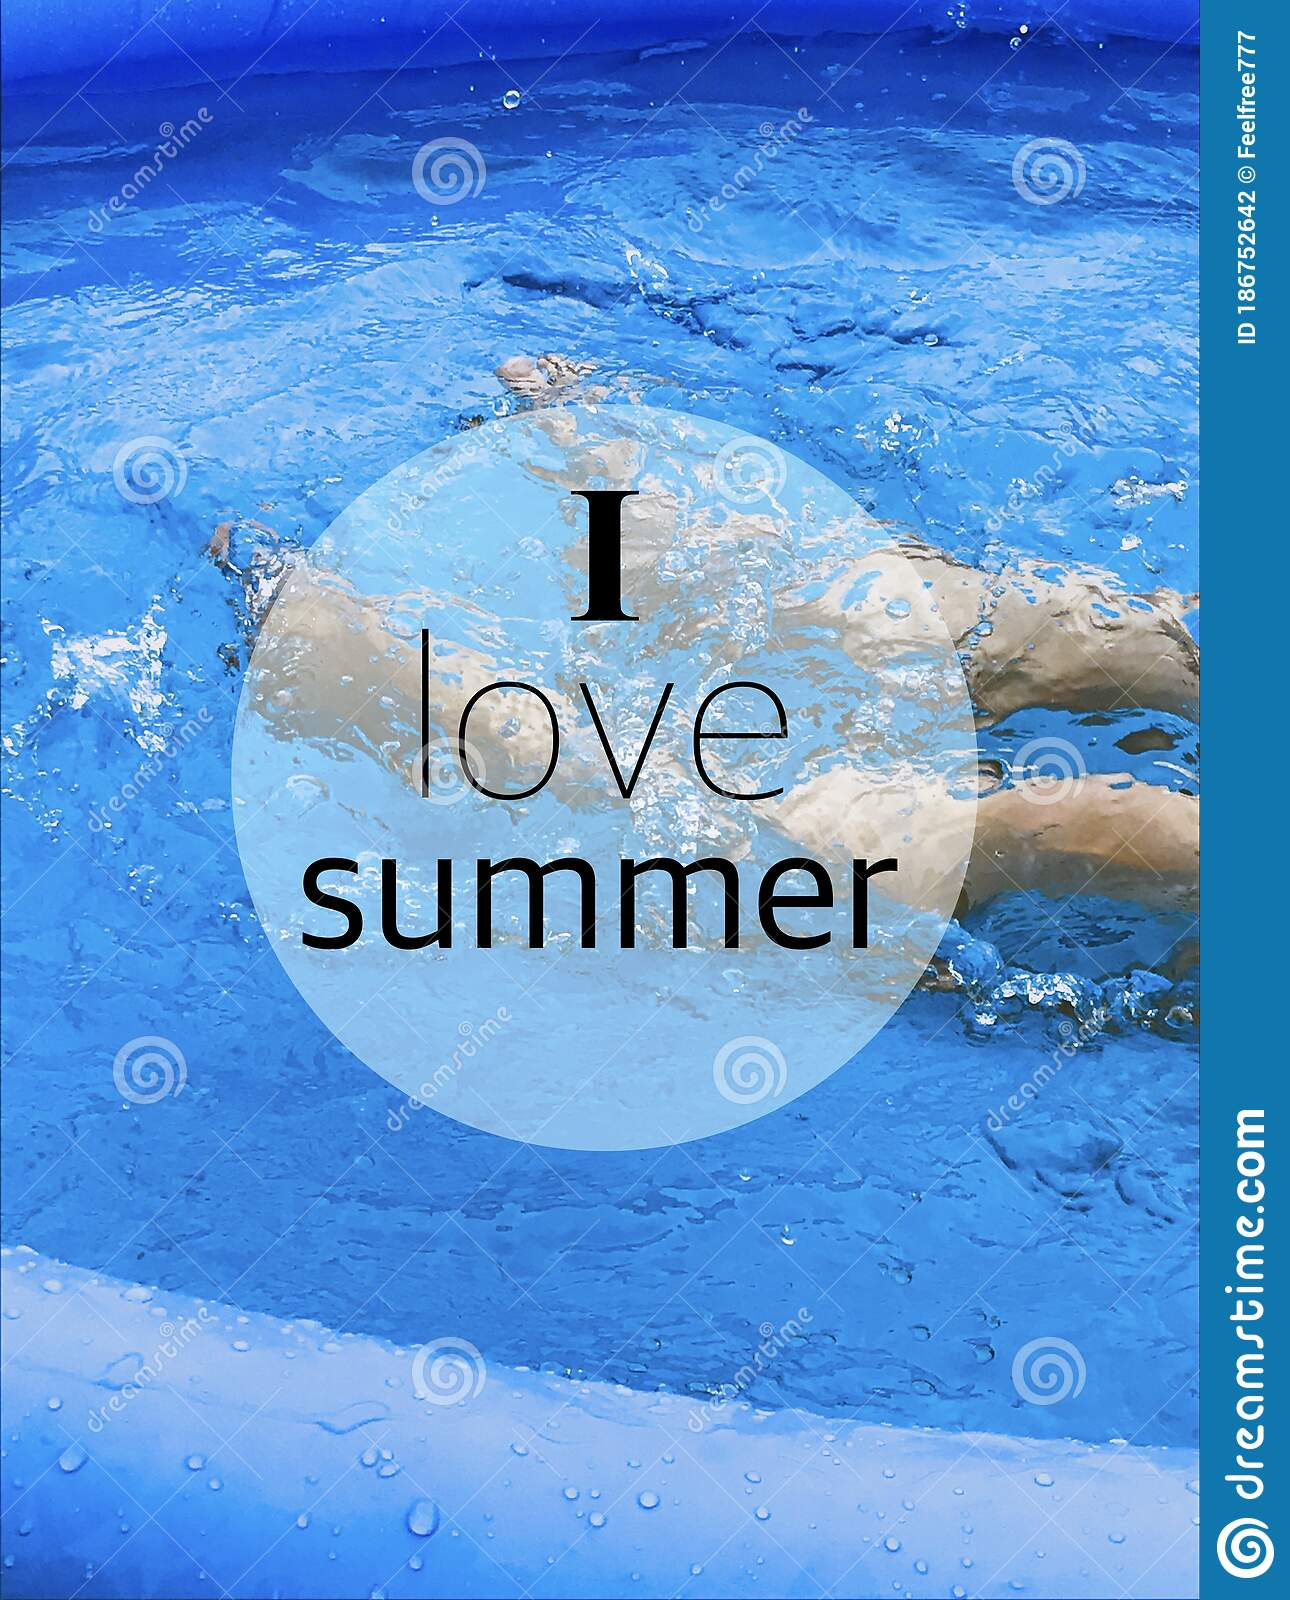 I Love Summer Happy Quotes Business Concep Artwork Stock Photo Image Of Products Team 186752642